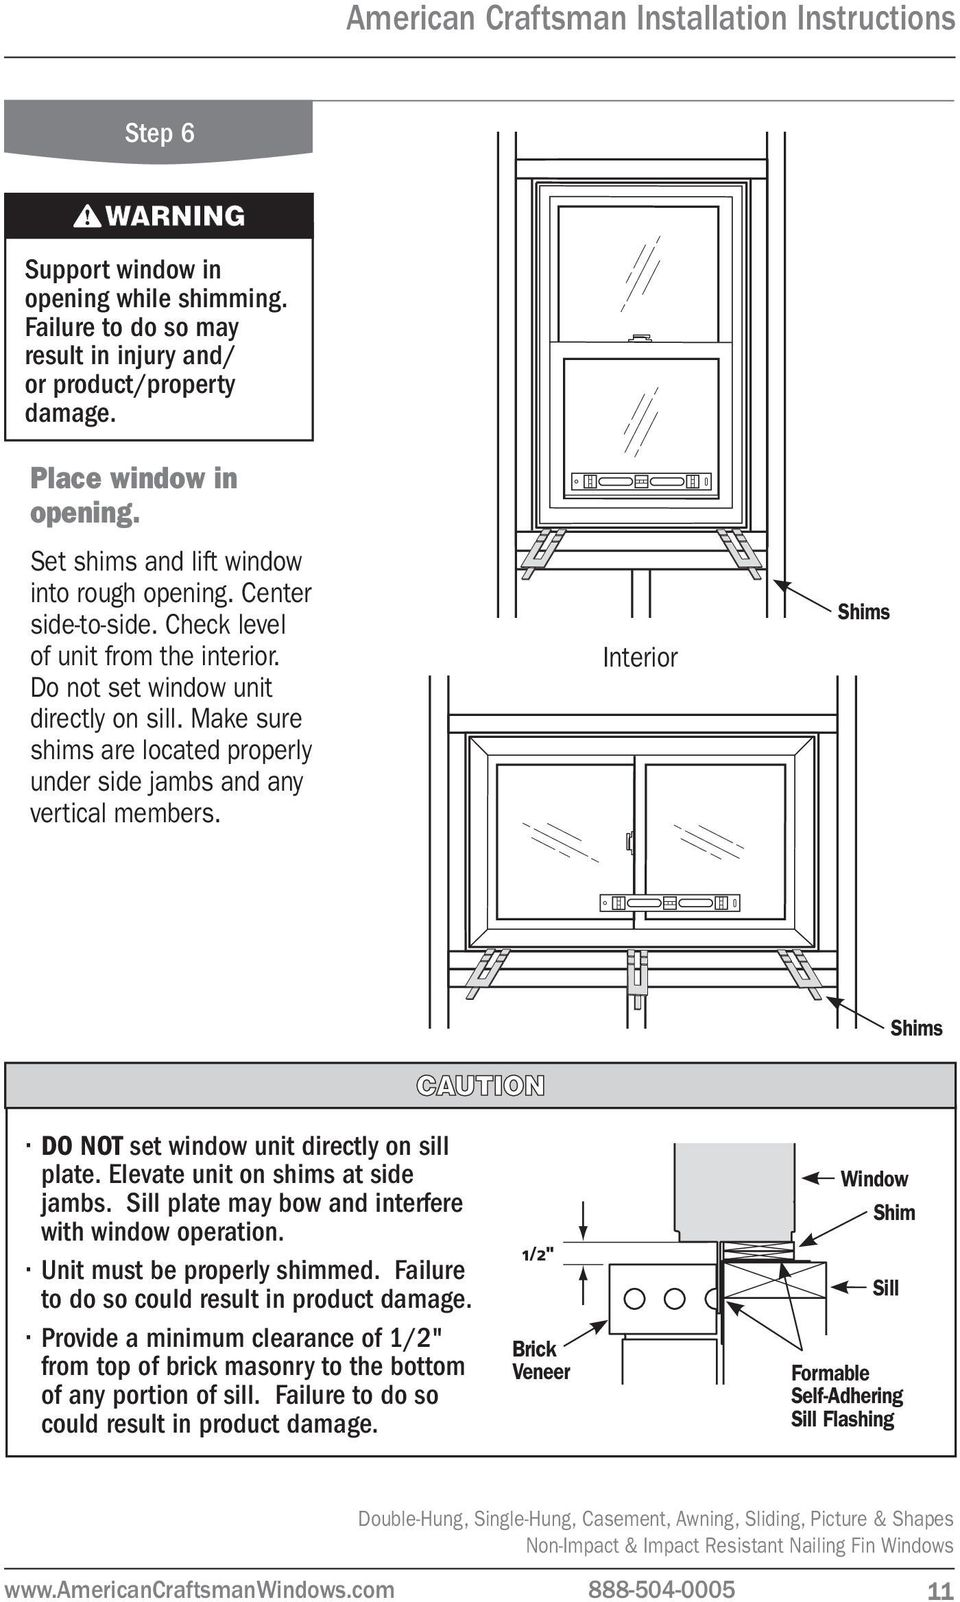 Shims Shims DO NOT set window unit directly on sill plate. Elevate unit on shims at side jambs. Sill plate may bow and interfere with window operation. Unit must be properly shimmed.